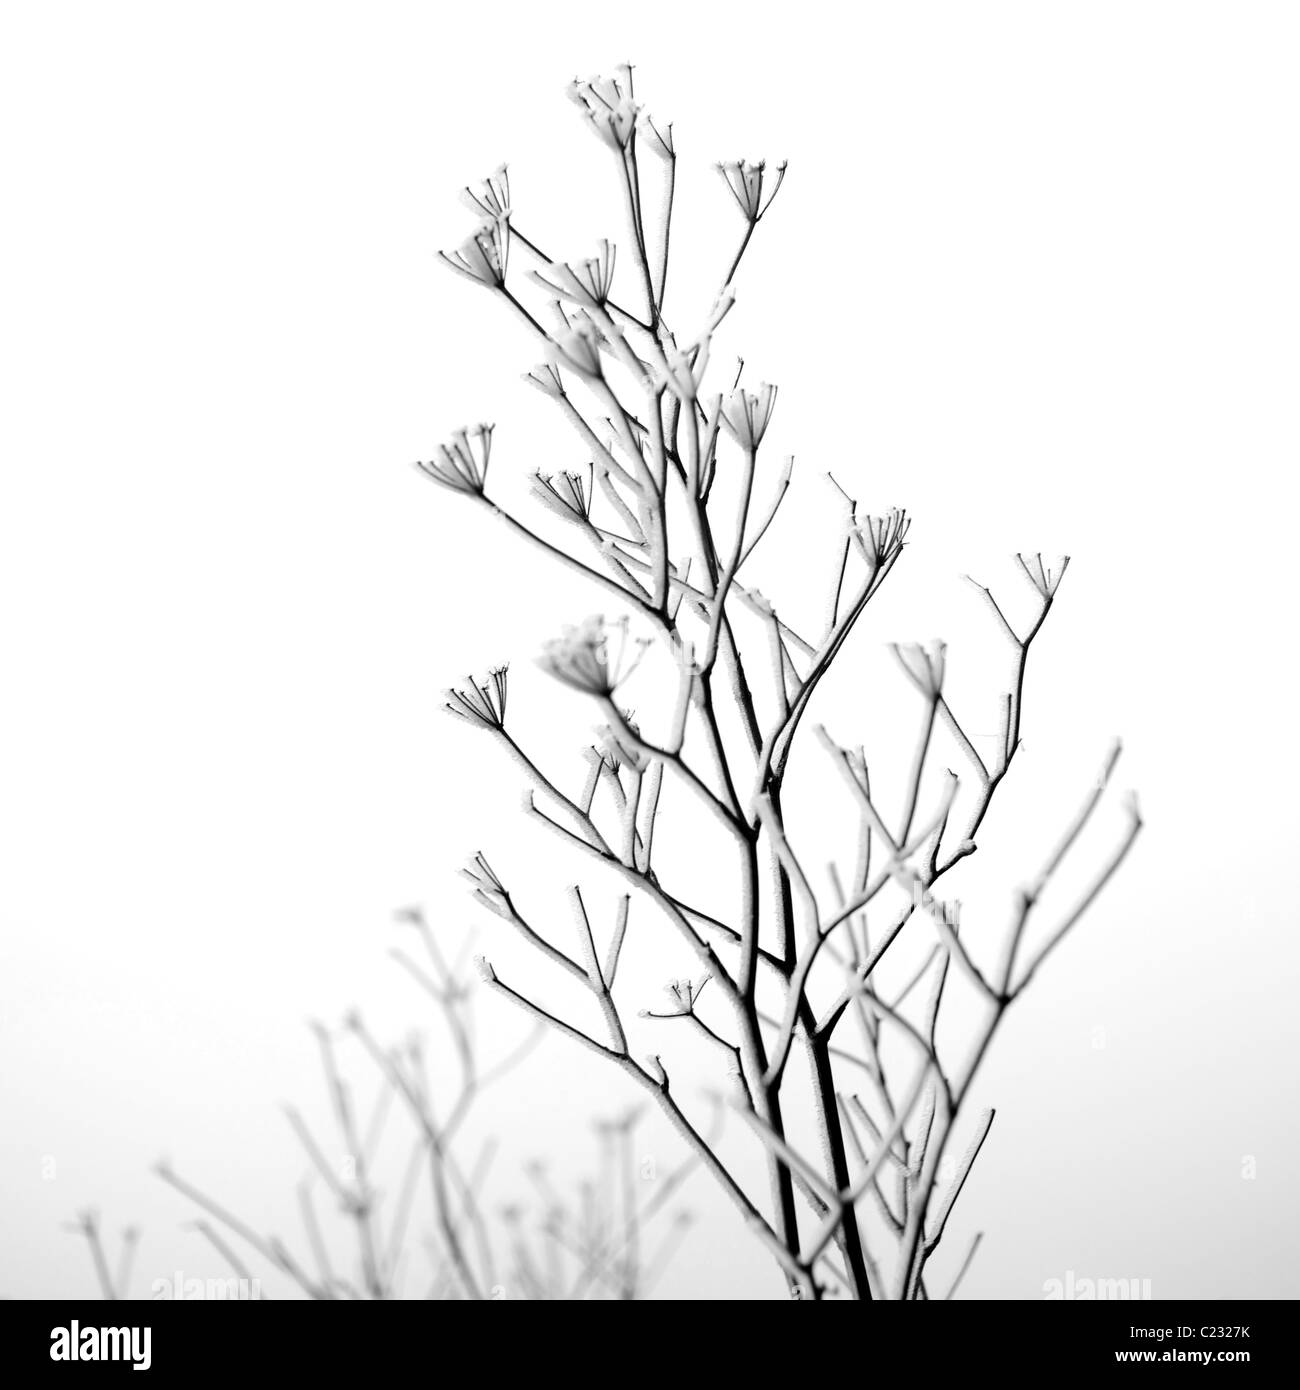 Branch with snow on it - Stock Image